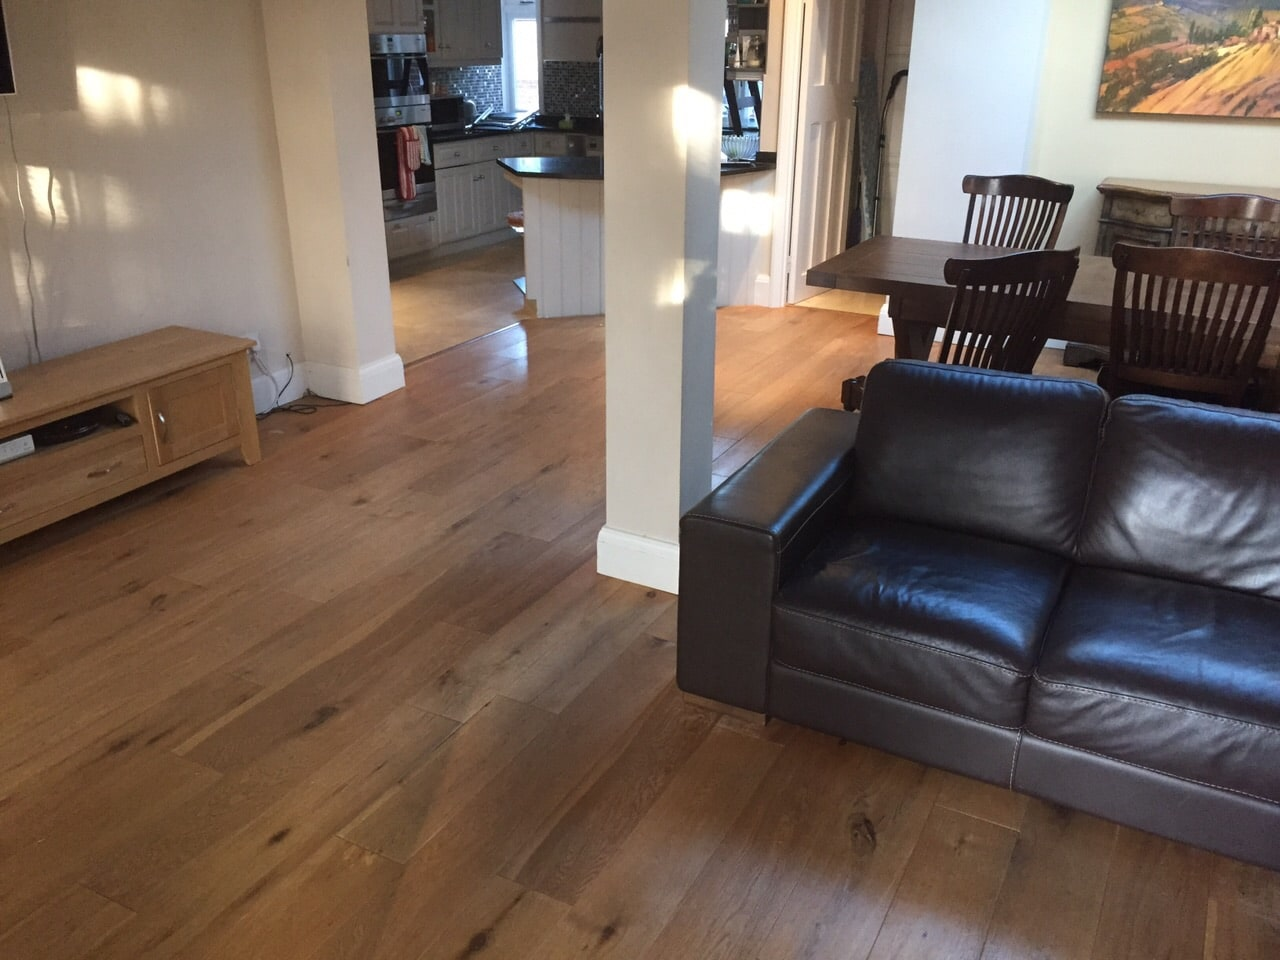 Floor sanding london dogs and hardwood floors for Hardwood floors good for dogs